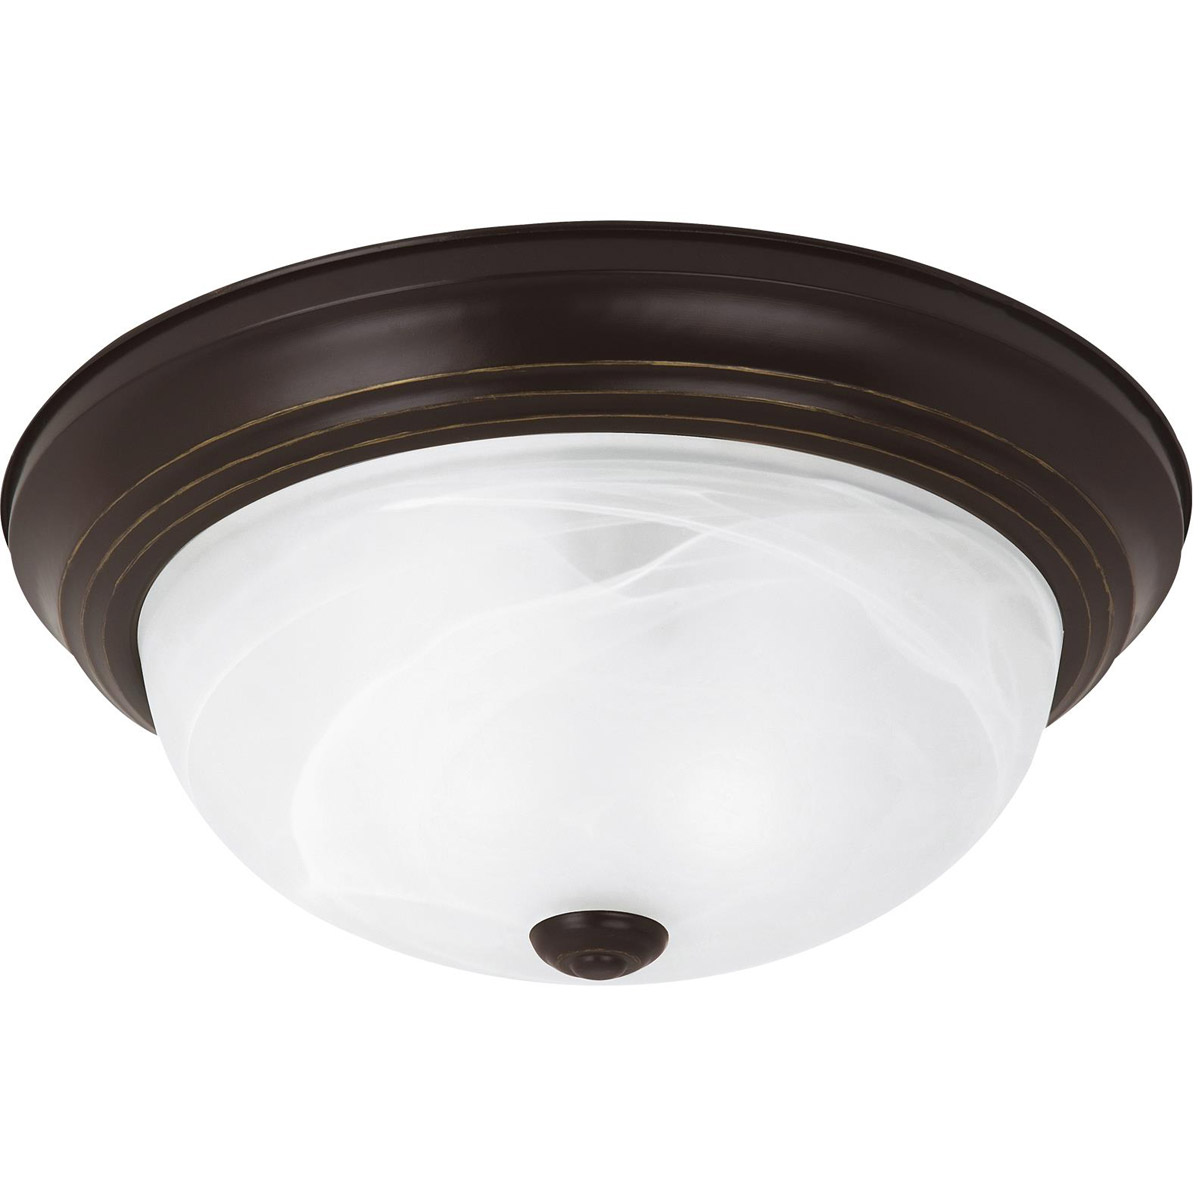 Sea Gull 75943-782 Windgate 3 Light 15 inch Heirloom Bronze Flush Mount Ceiling Light in Standard photo